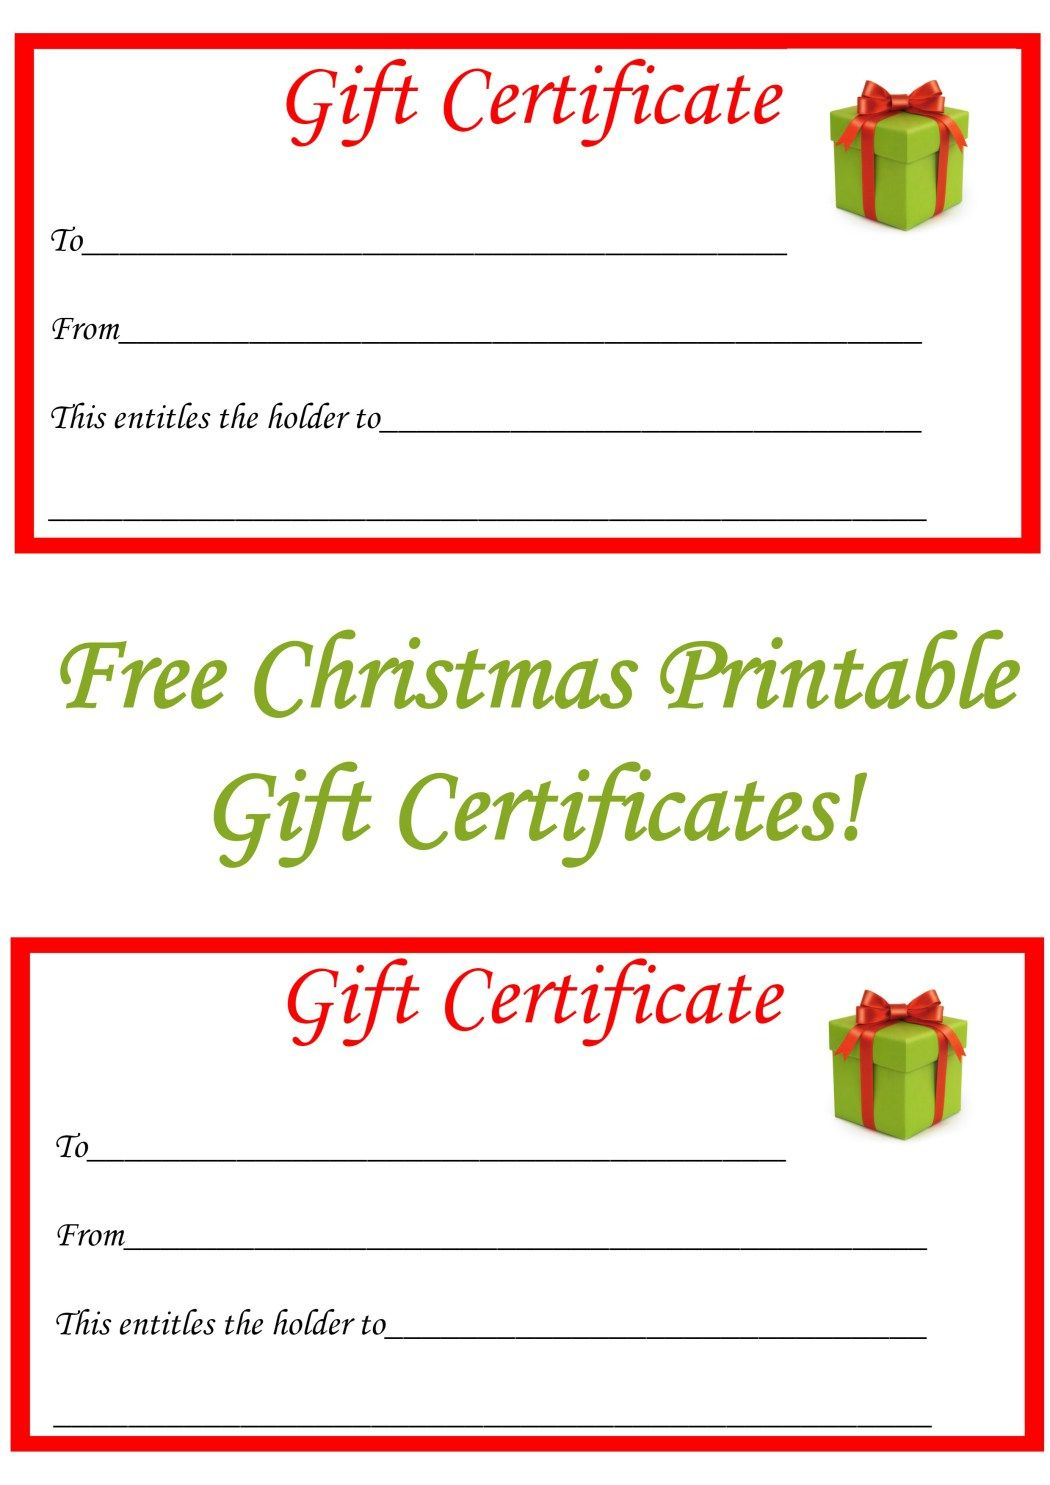 downloadable gift certificate templates - best 25 printable gift certificates ideas on pinterest